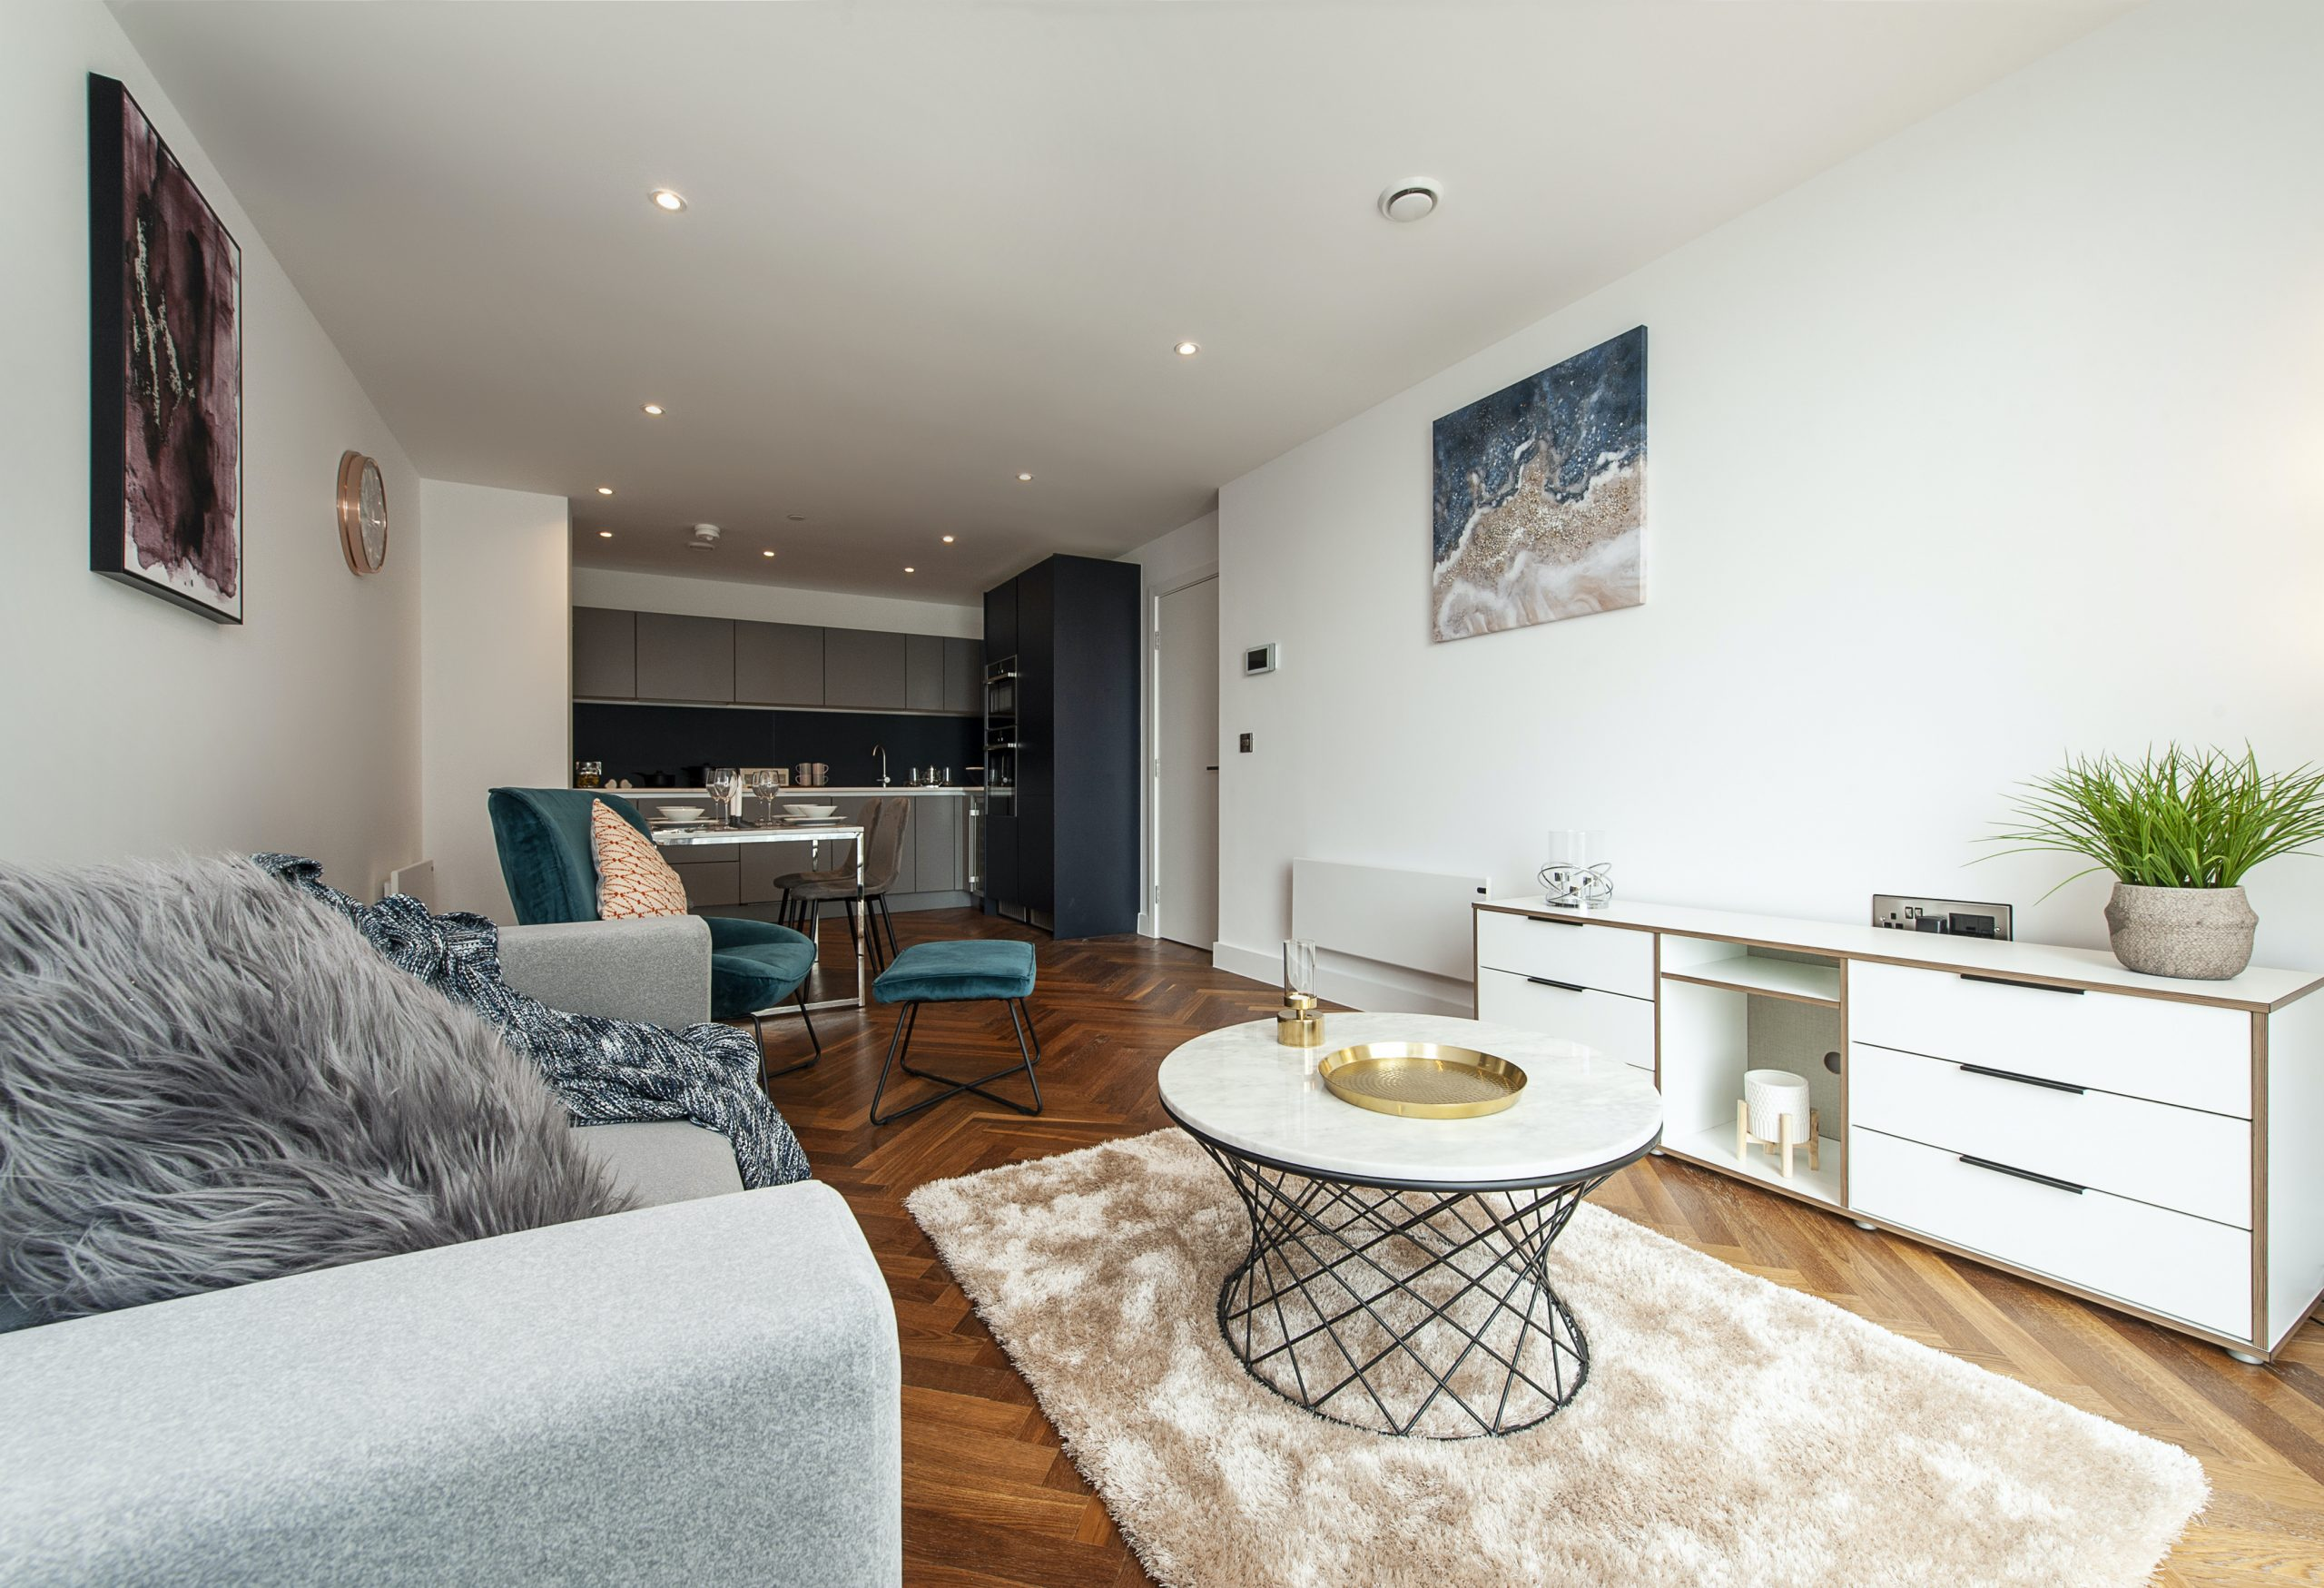 Lounge, diner, kitchen furniture packages | Manor Interiors